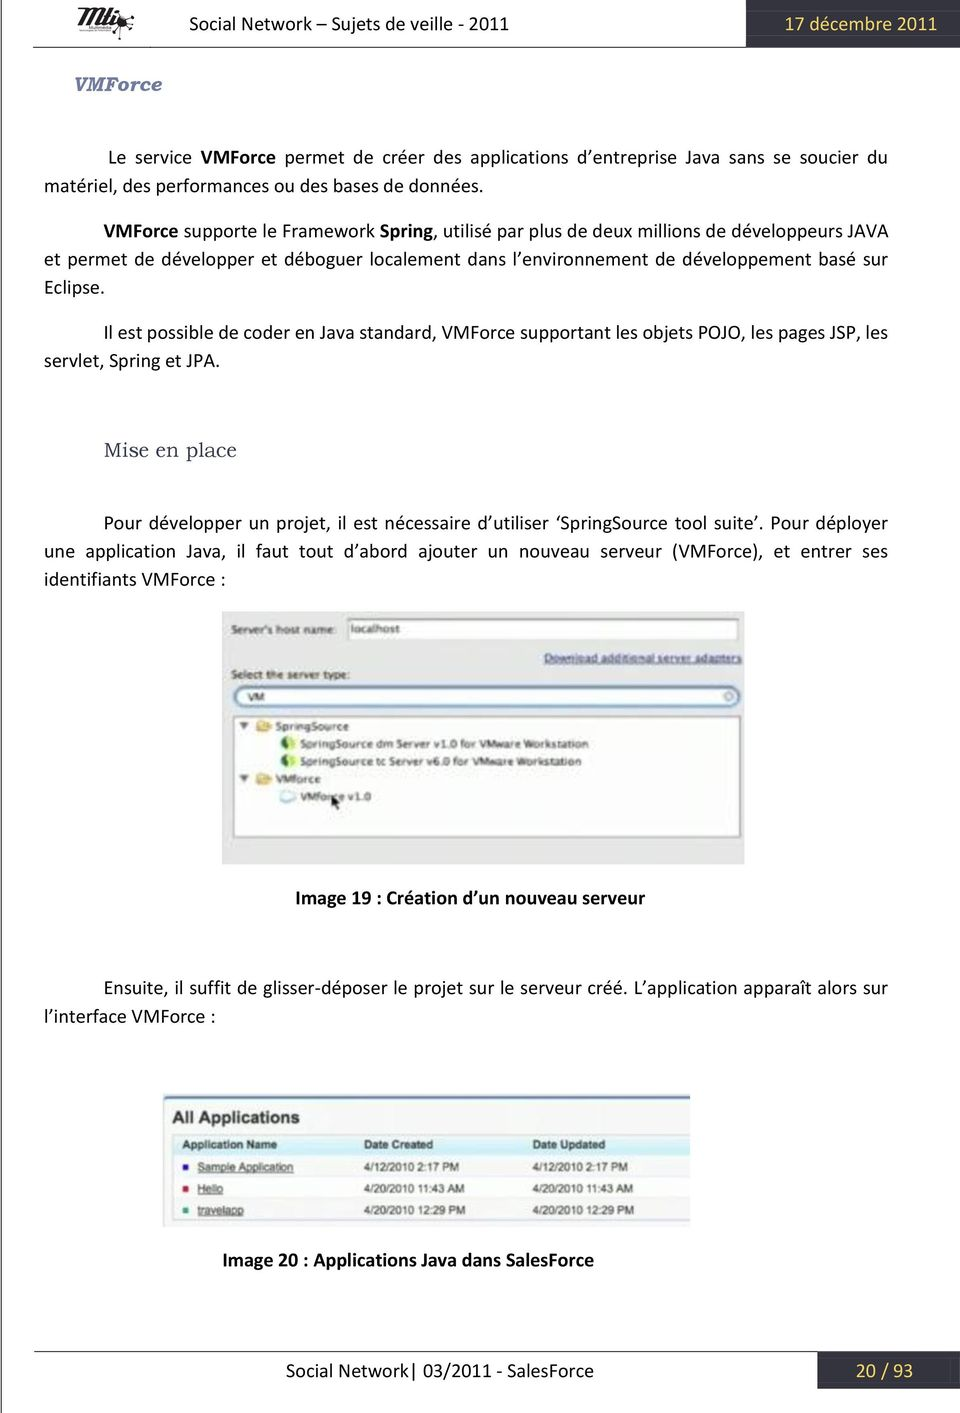 Il est possible de coder en Java standard, VMForce supportant les objets POJO, les pages JSP, les servlet, Spring et JPA.